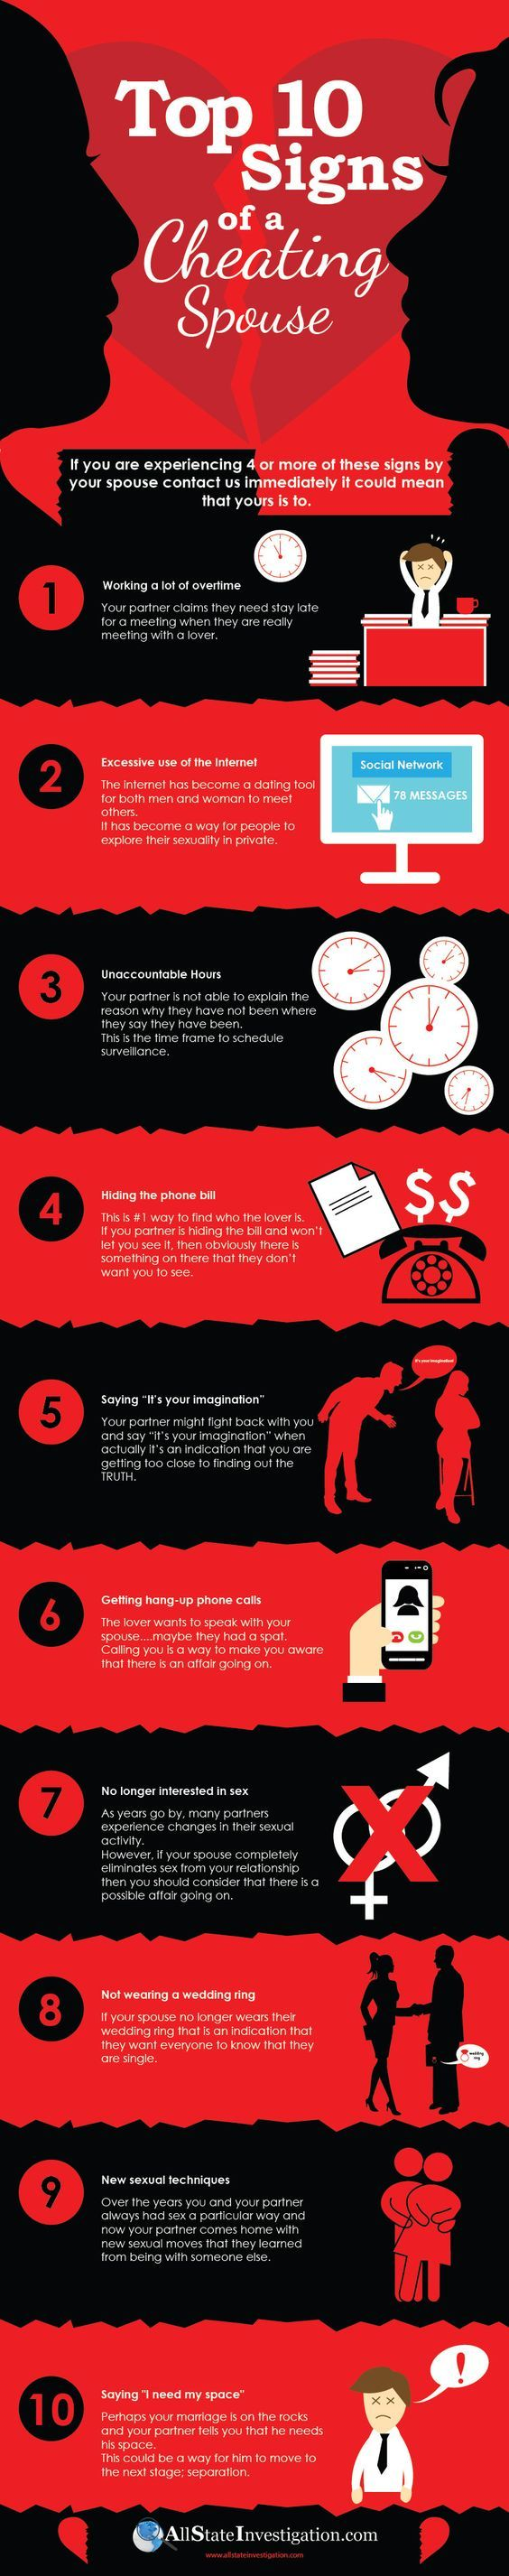 Psychology : Top 10 Signs of A Cheating Spouse #infographic #Cheating #Relationship: